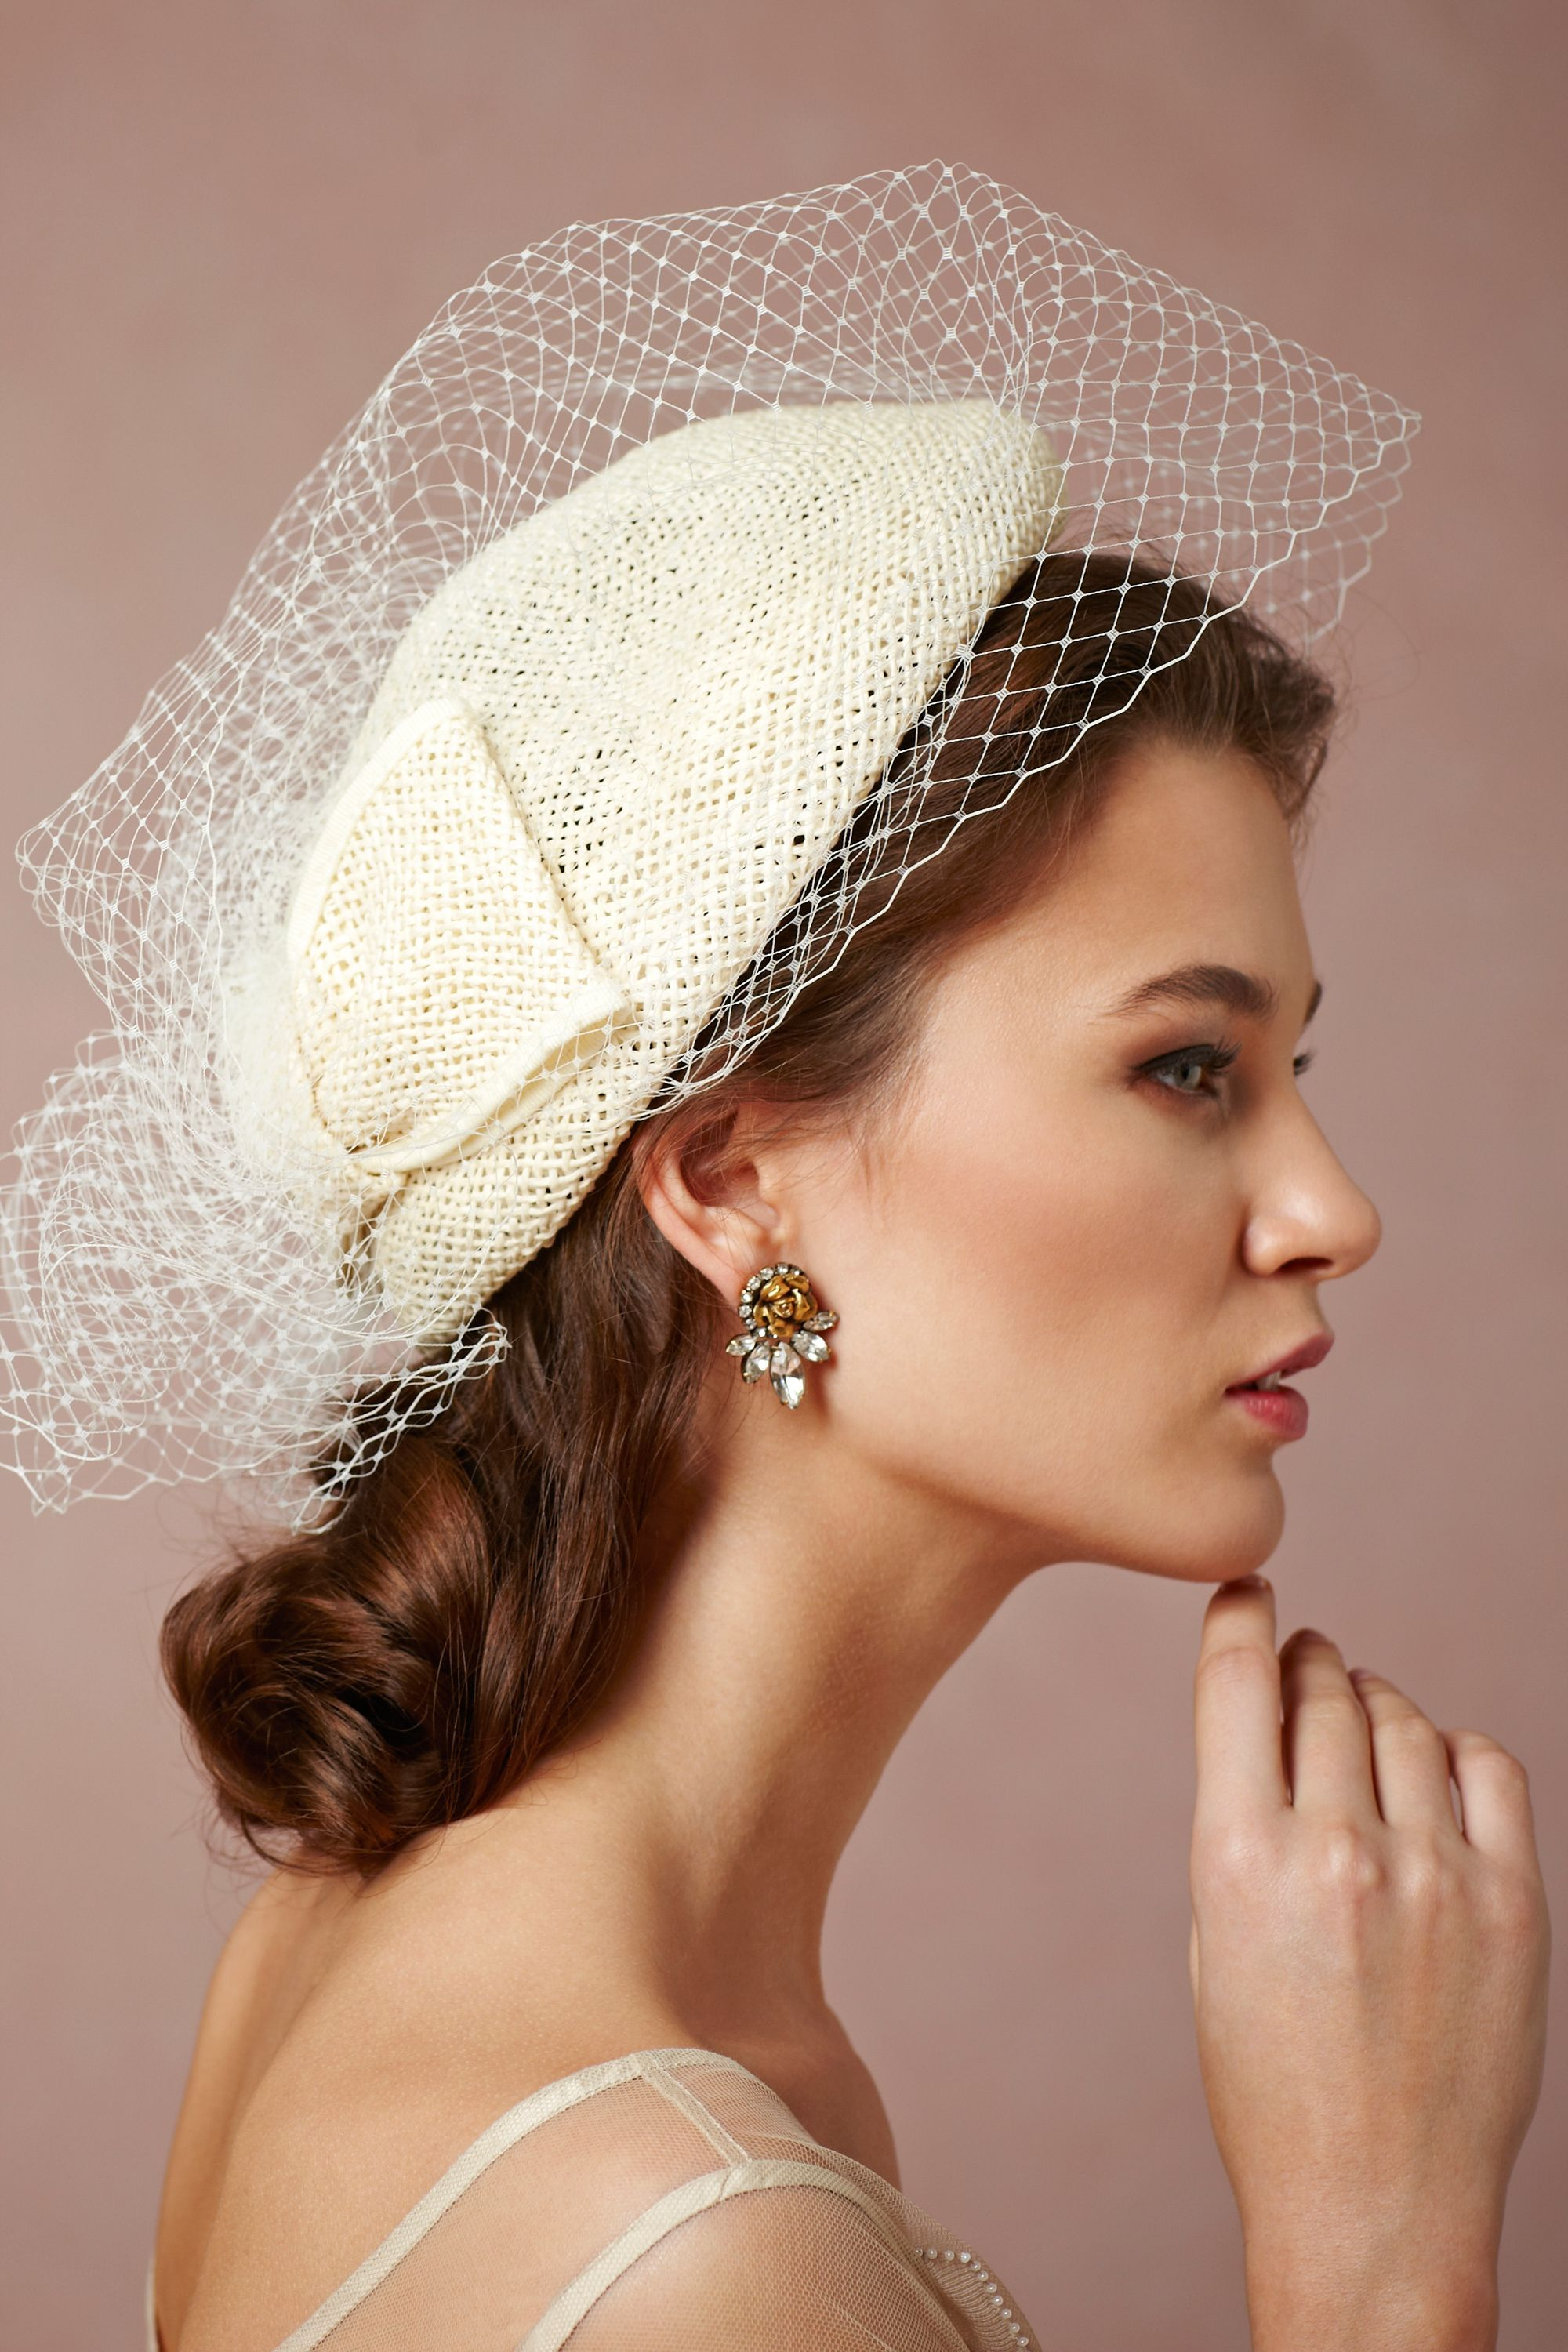 Mad Dash Pillbox Wedding Accessories By Bhldn Loverly Veiled Hats Wedding Hats Pretty Hats